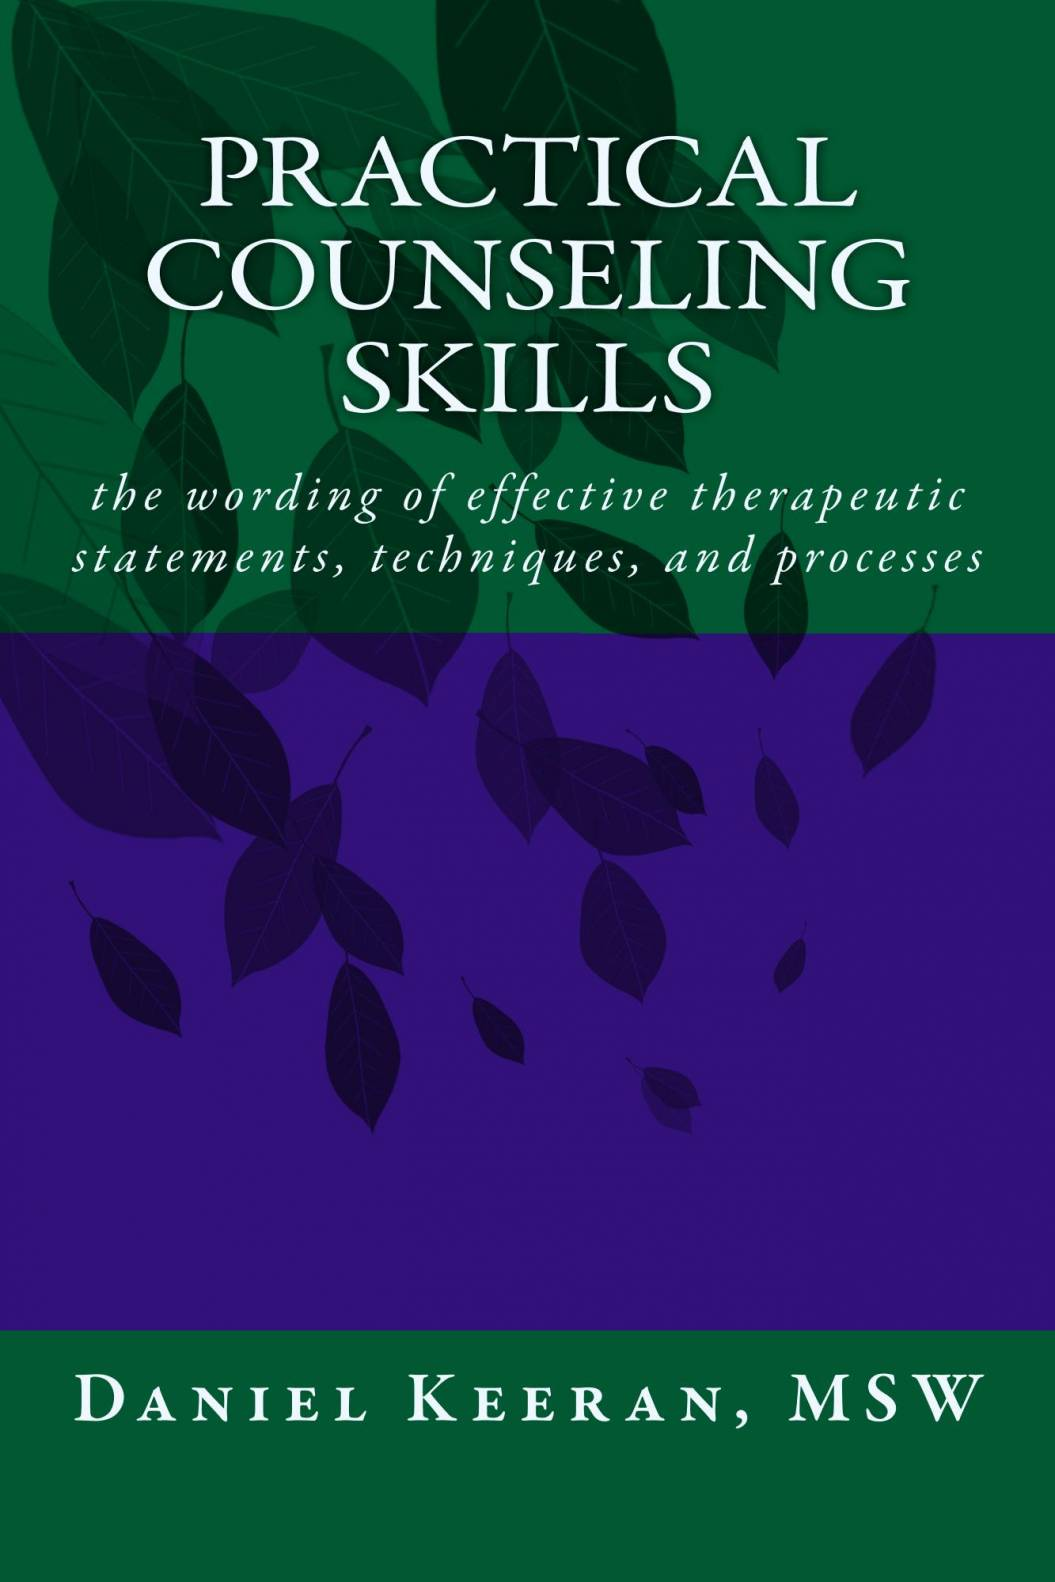 LEARN PRACTICAL COUNSELING SKILLS